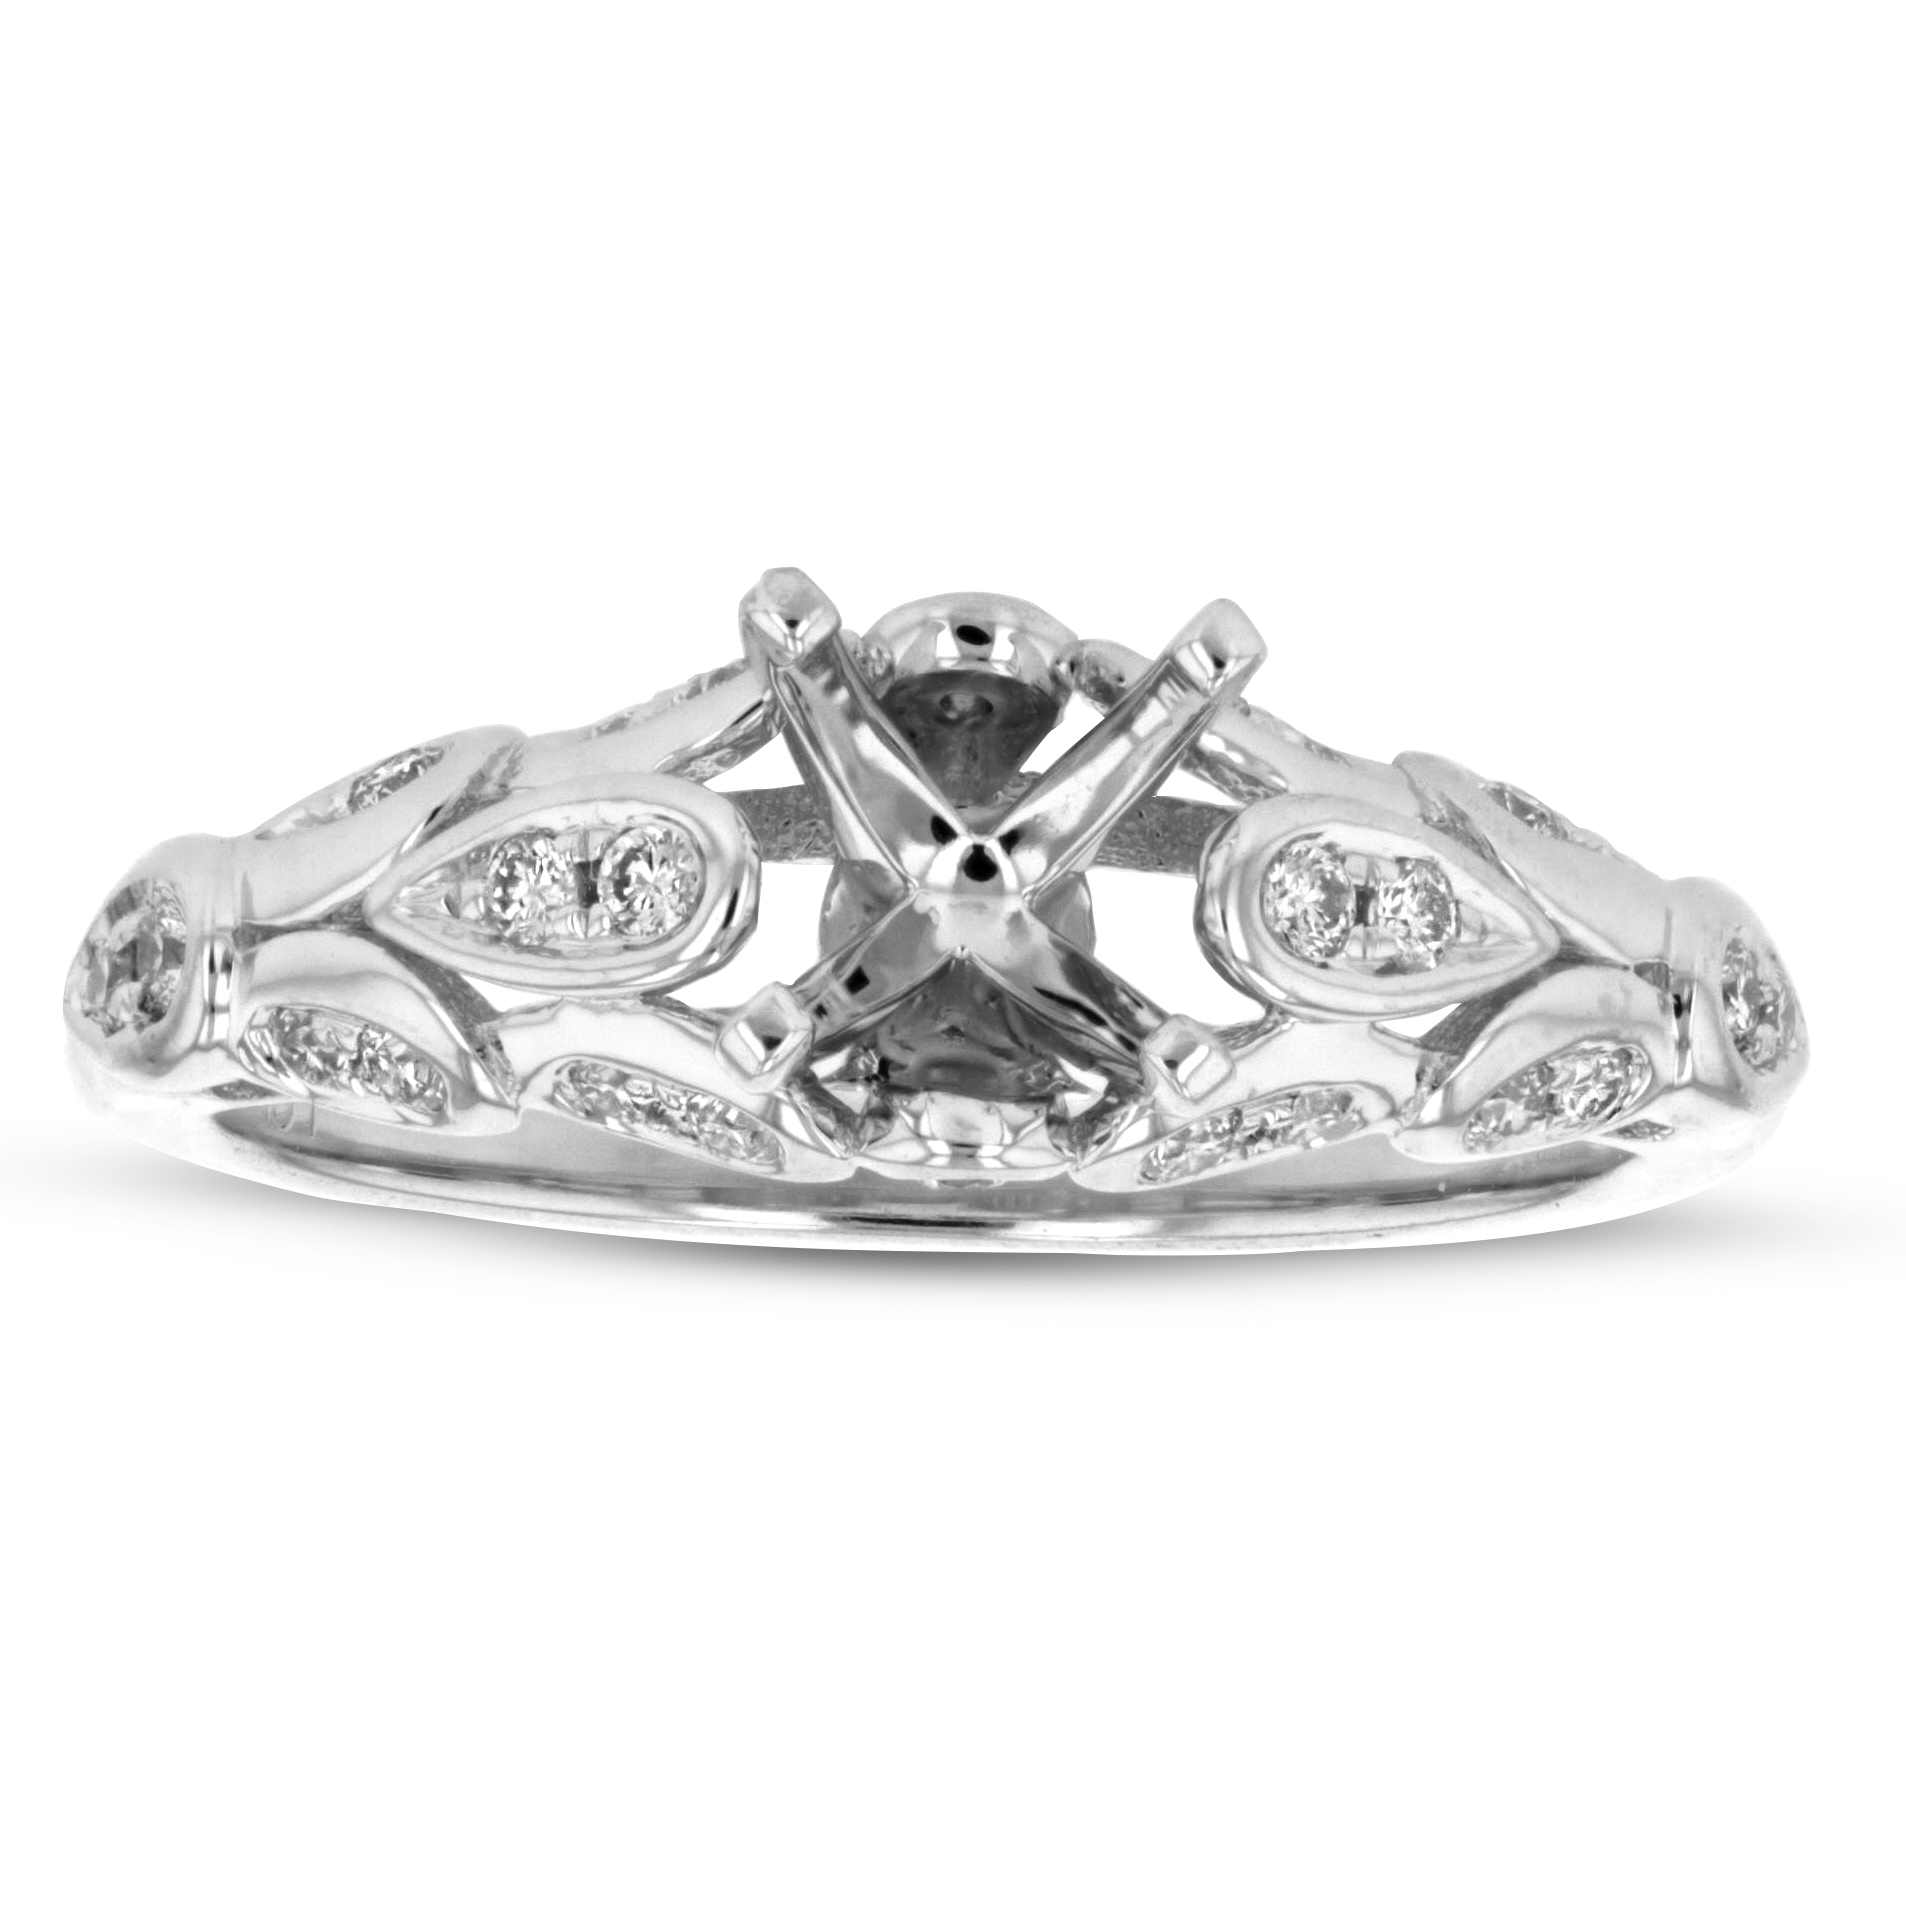 View 0.22ctw Diamond Semi Mount Ring in 14k White Gold